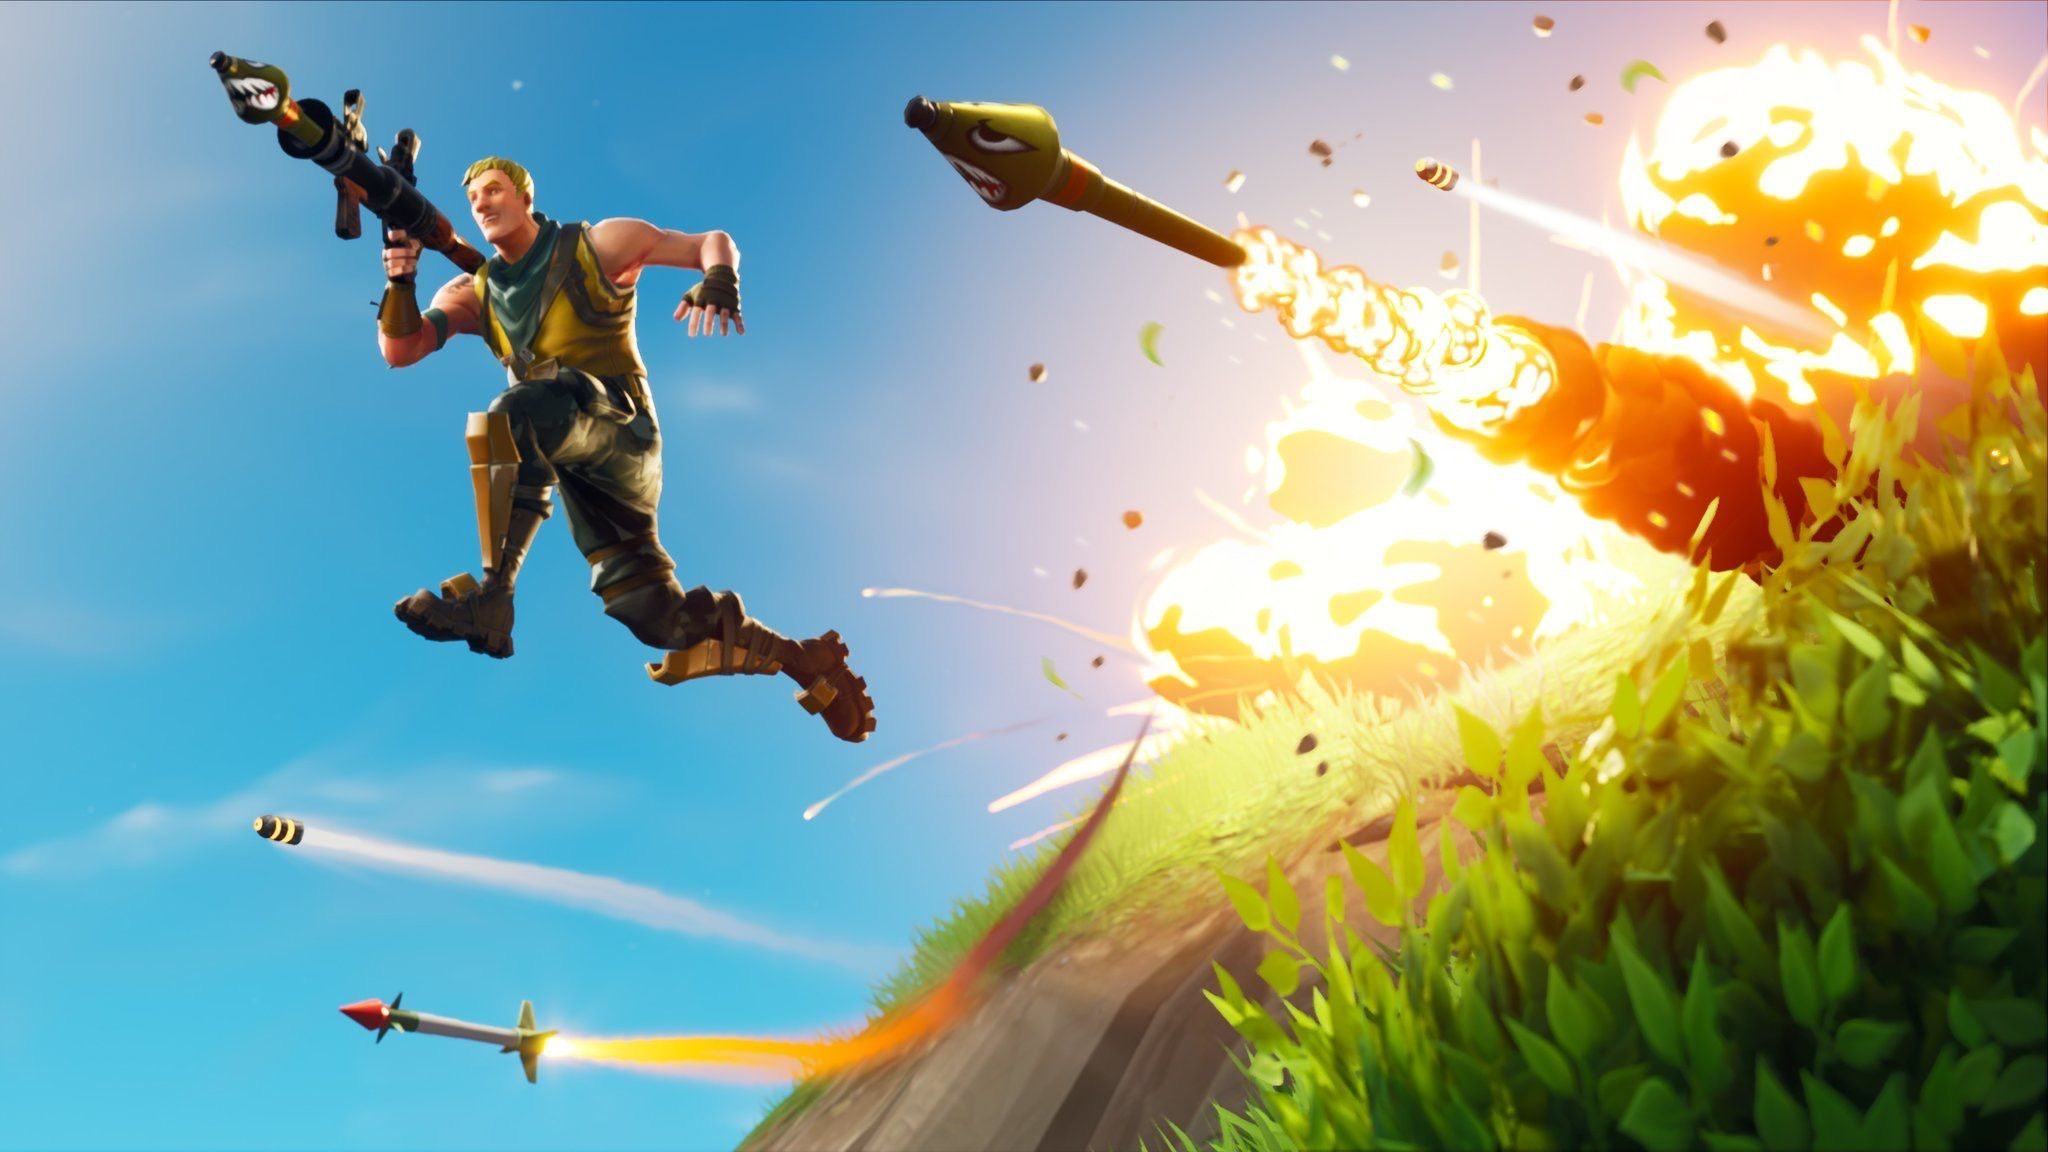 2048x1152 Fortnite' Leaks Reveal Quad Launcher, Suppressed SCAR, and ...